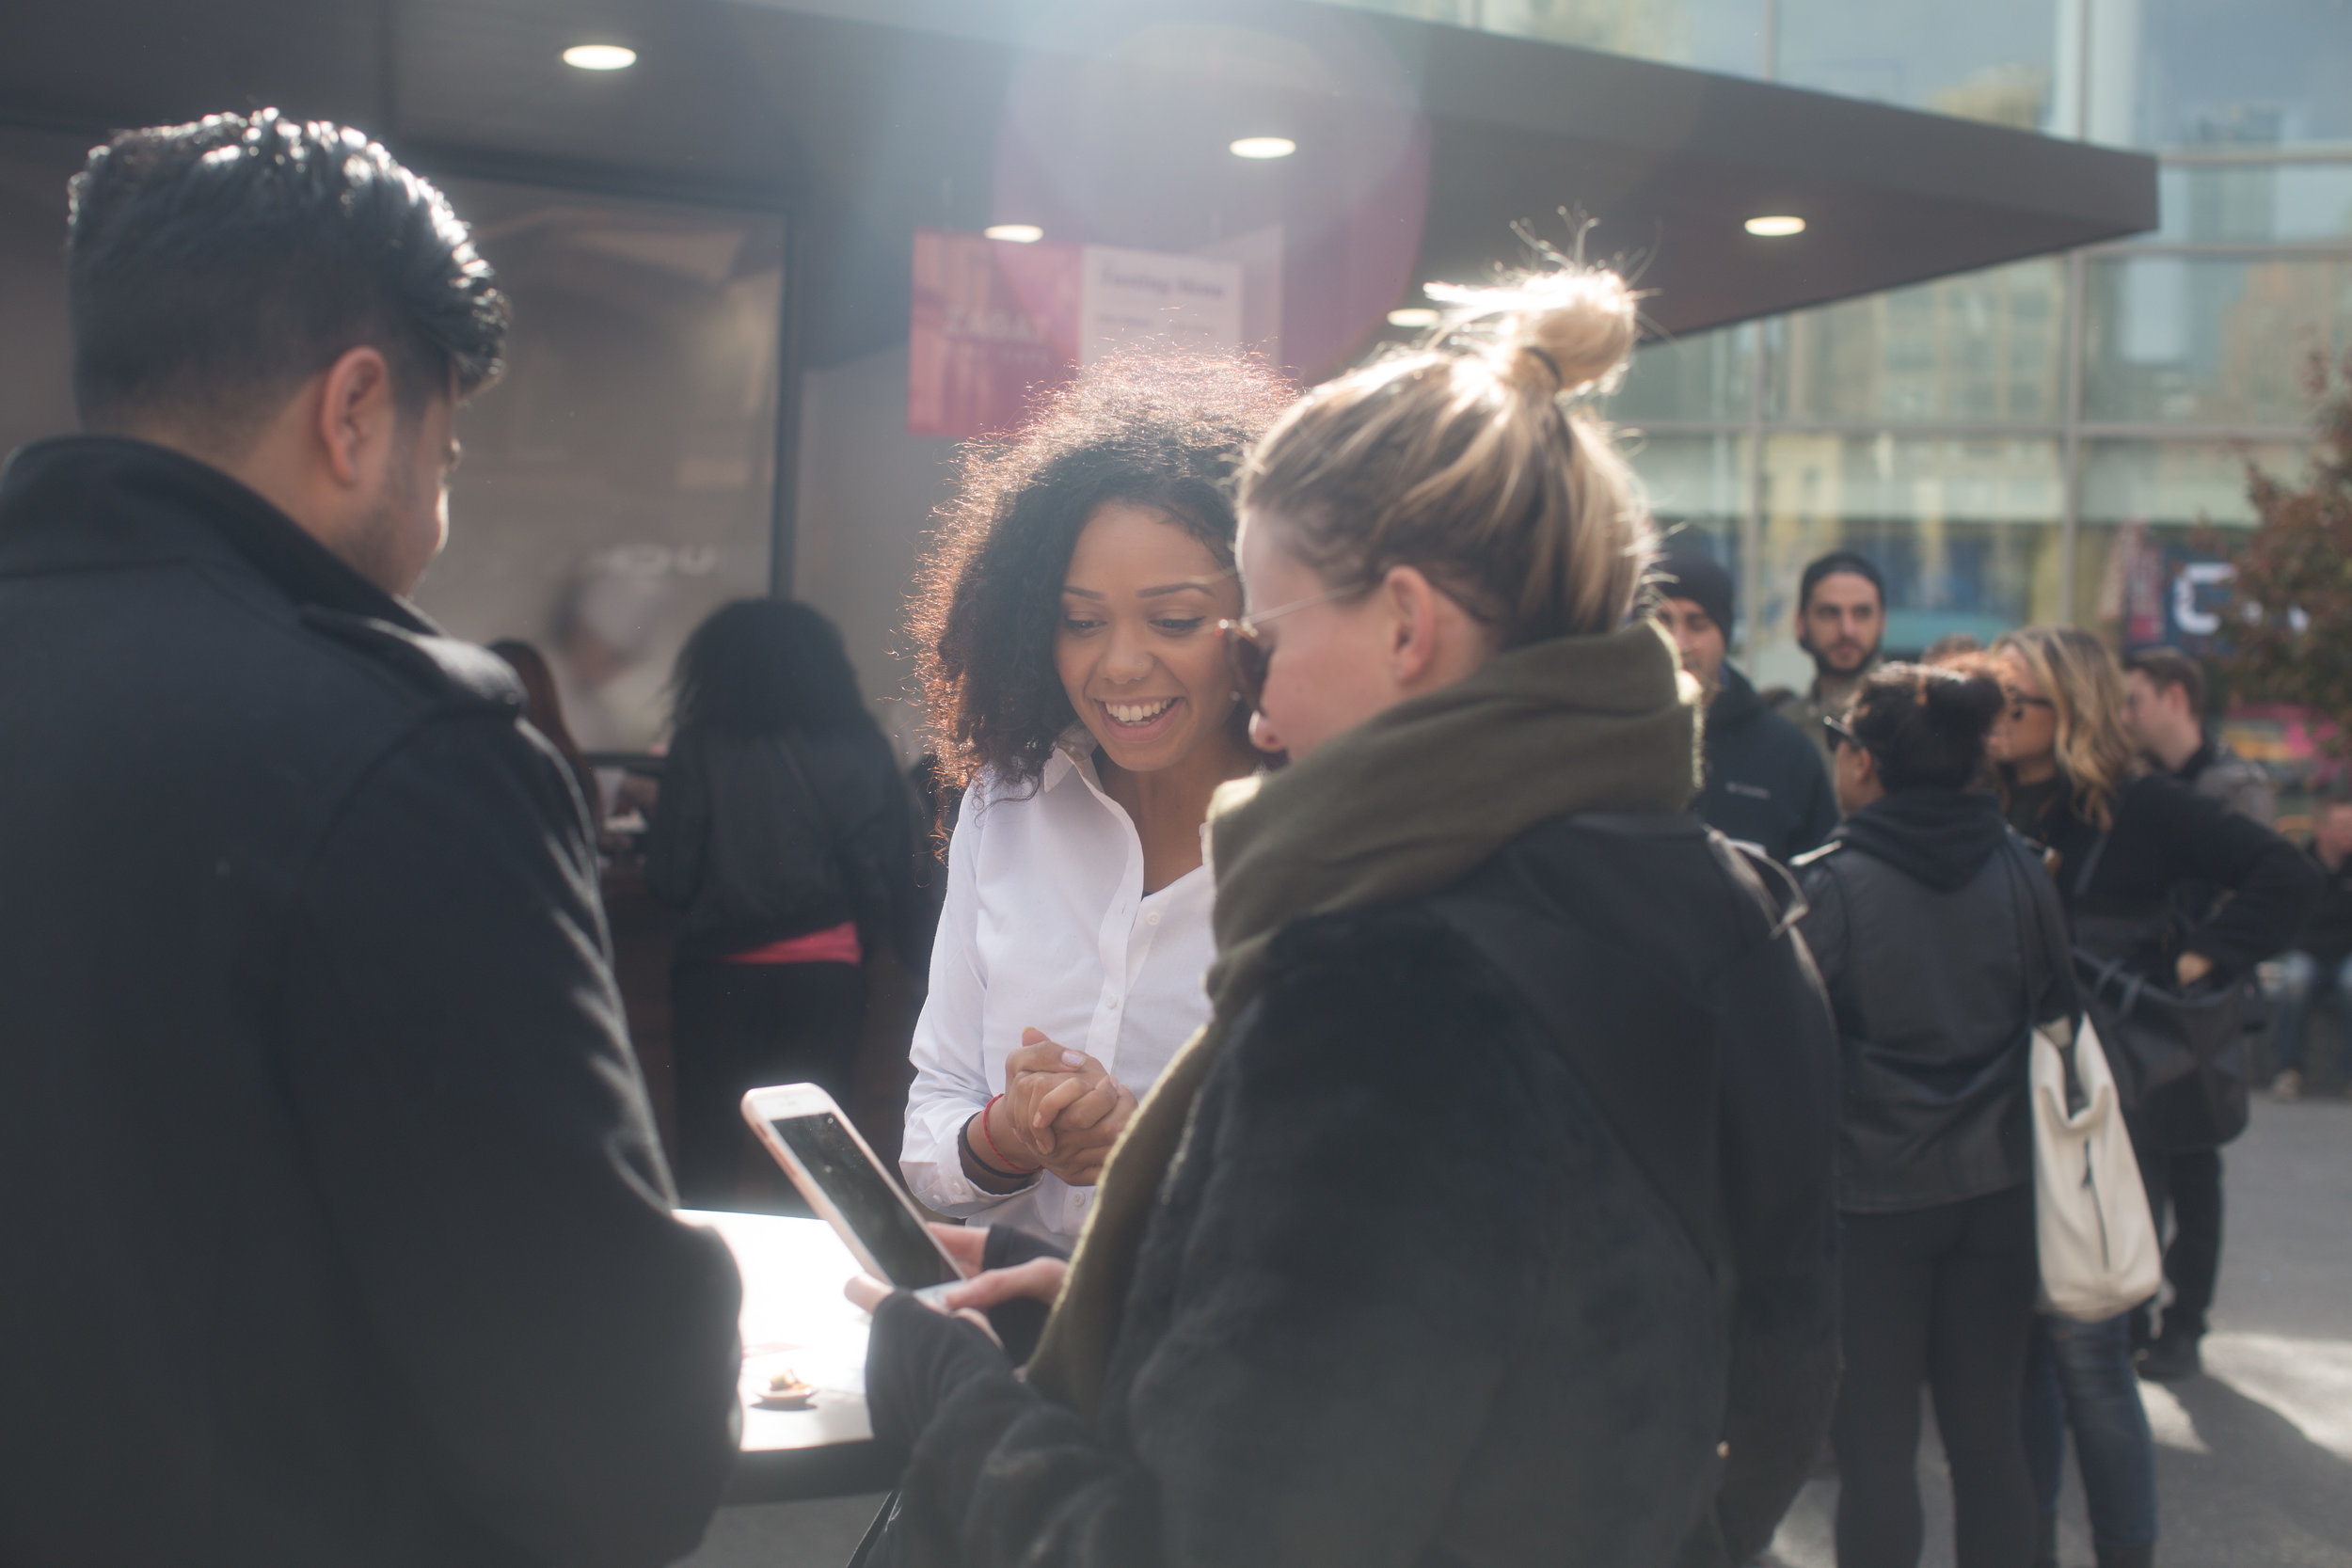 """Brand ambassadors showed waiting diners how to download the app and find the """"human-scale"""" versions of their favorite dishes. I choreographed the brand ambassadors, providing messaging and training."""